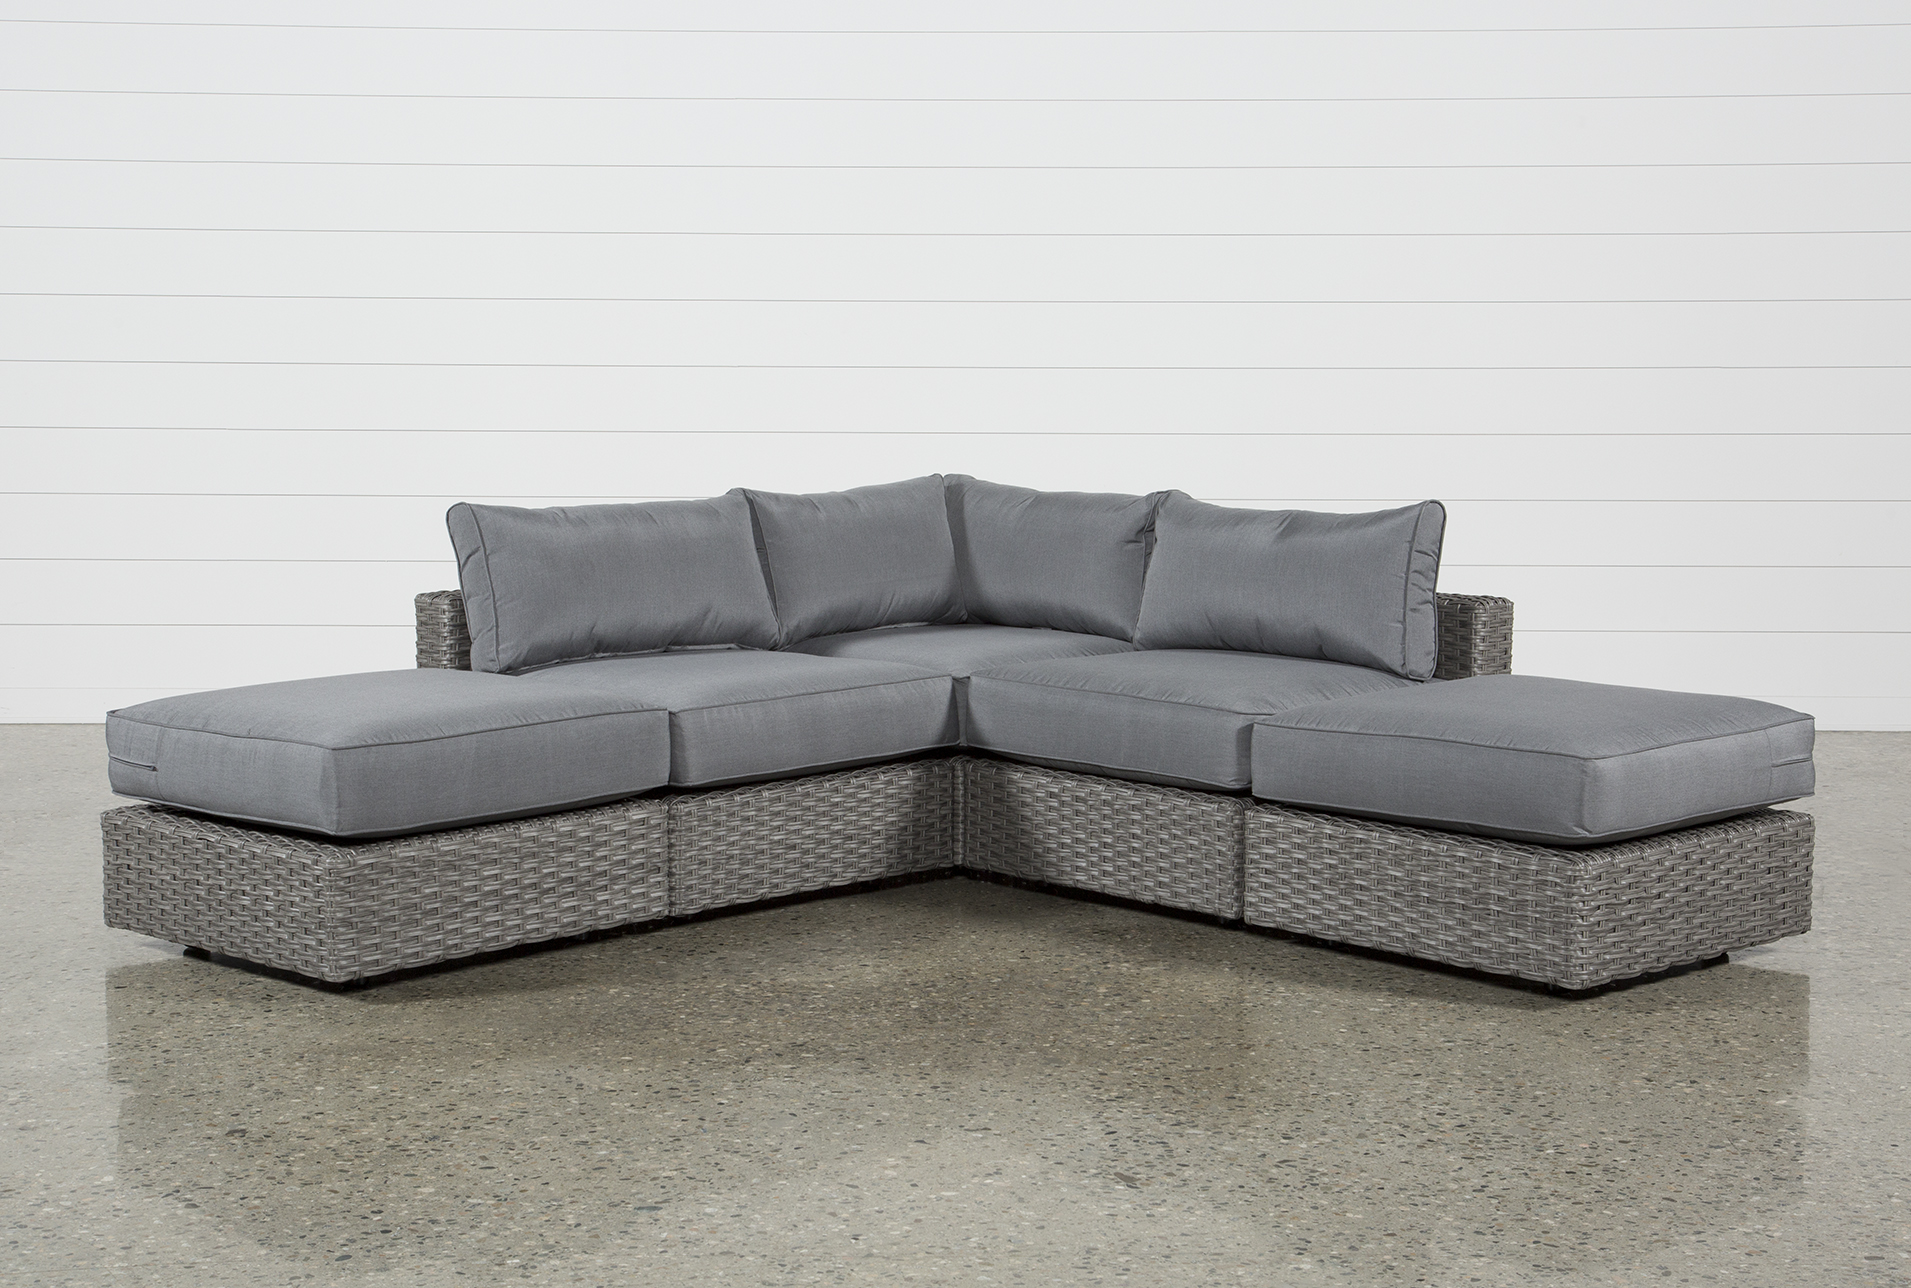 Outdoor Koro 5 Piece Sectional W/2 Ottomans (Qty: 1) Has Been Successfully  Added To Your Cart.